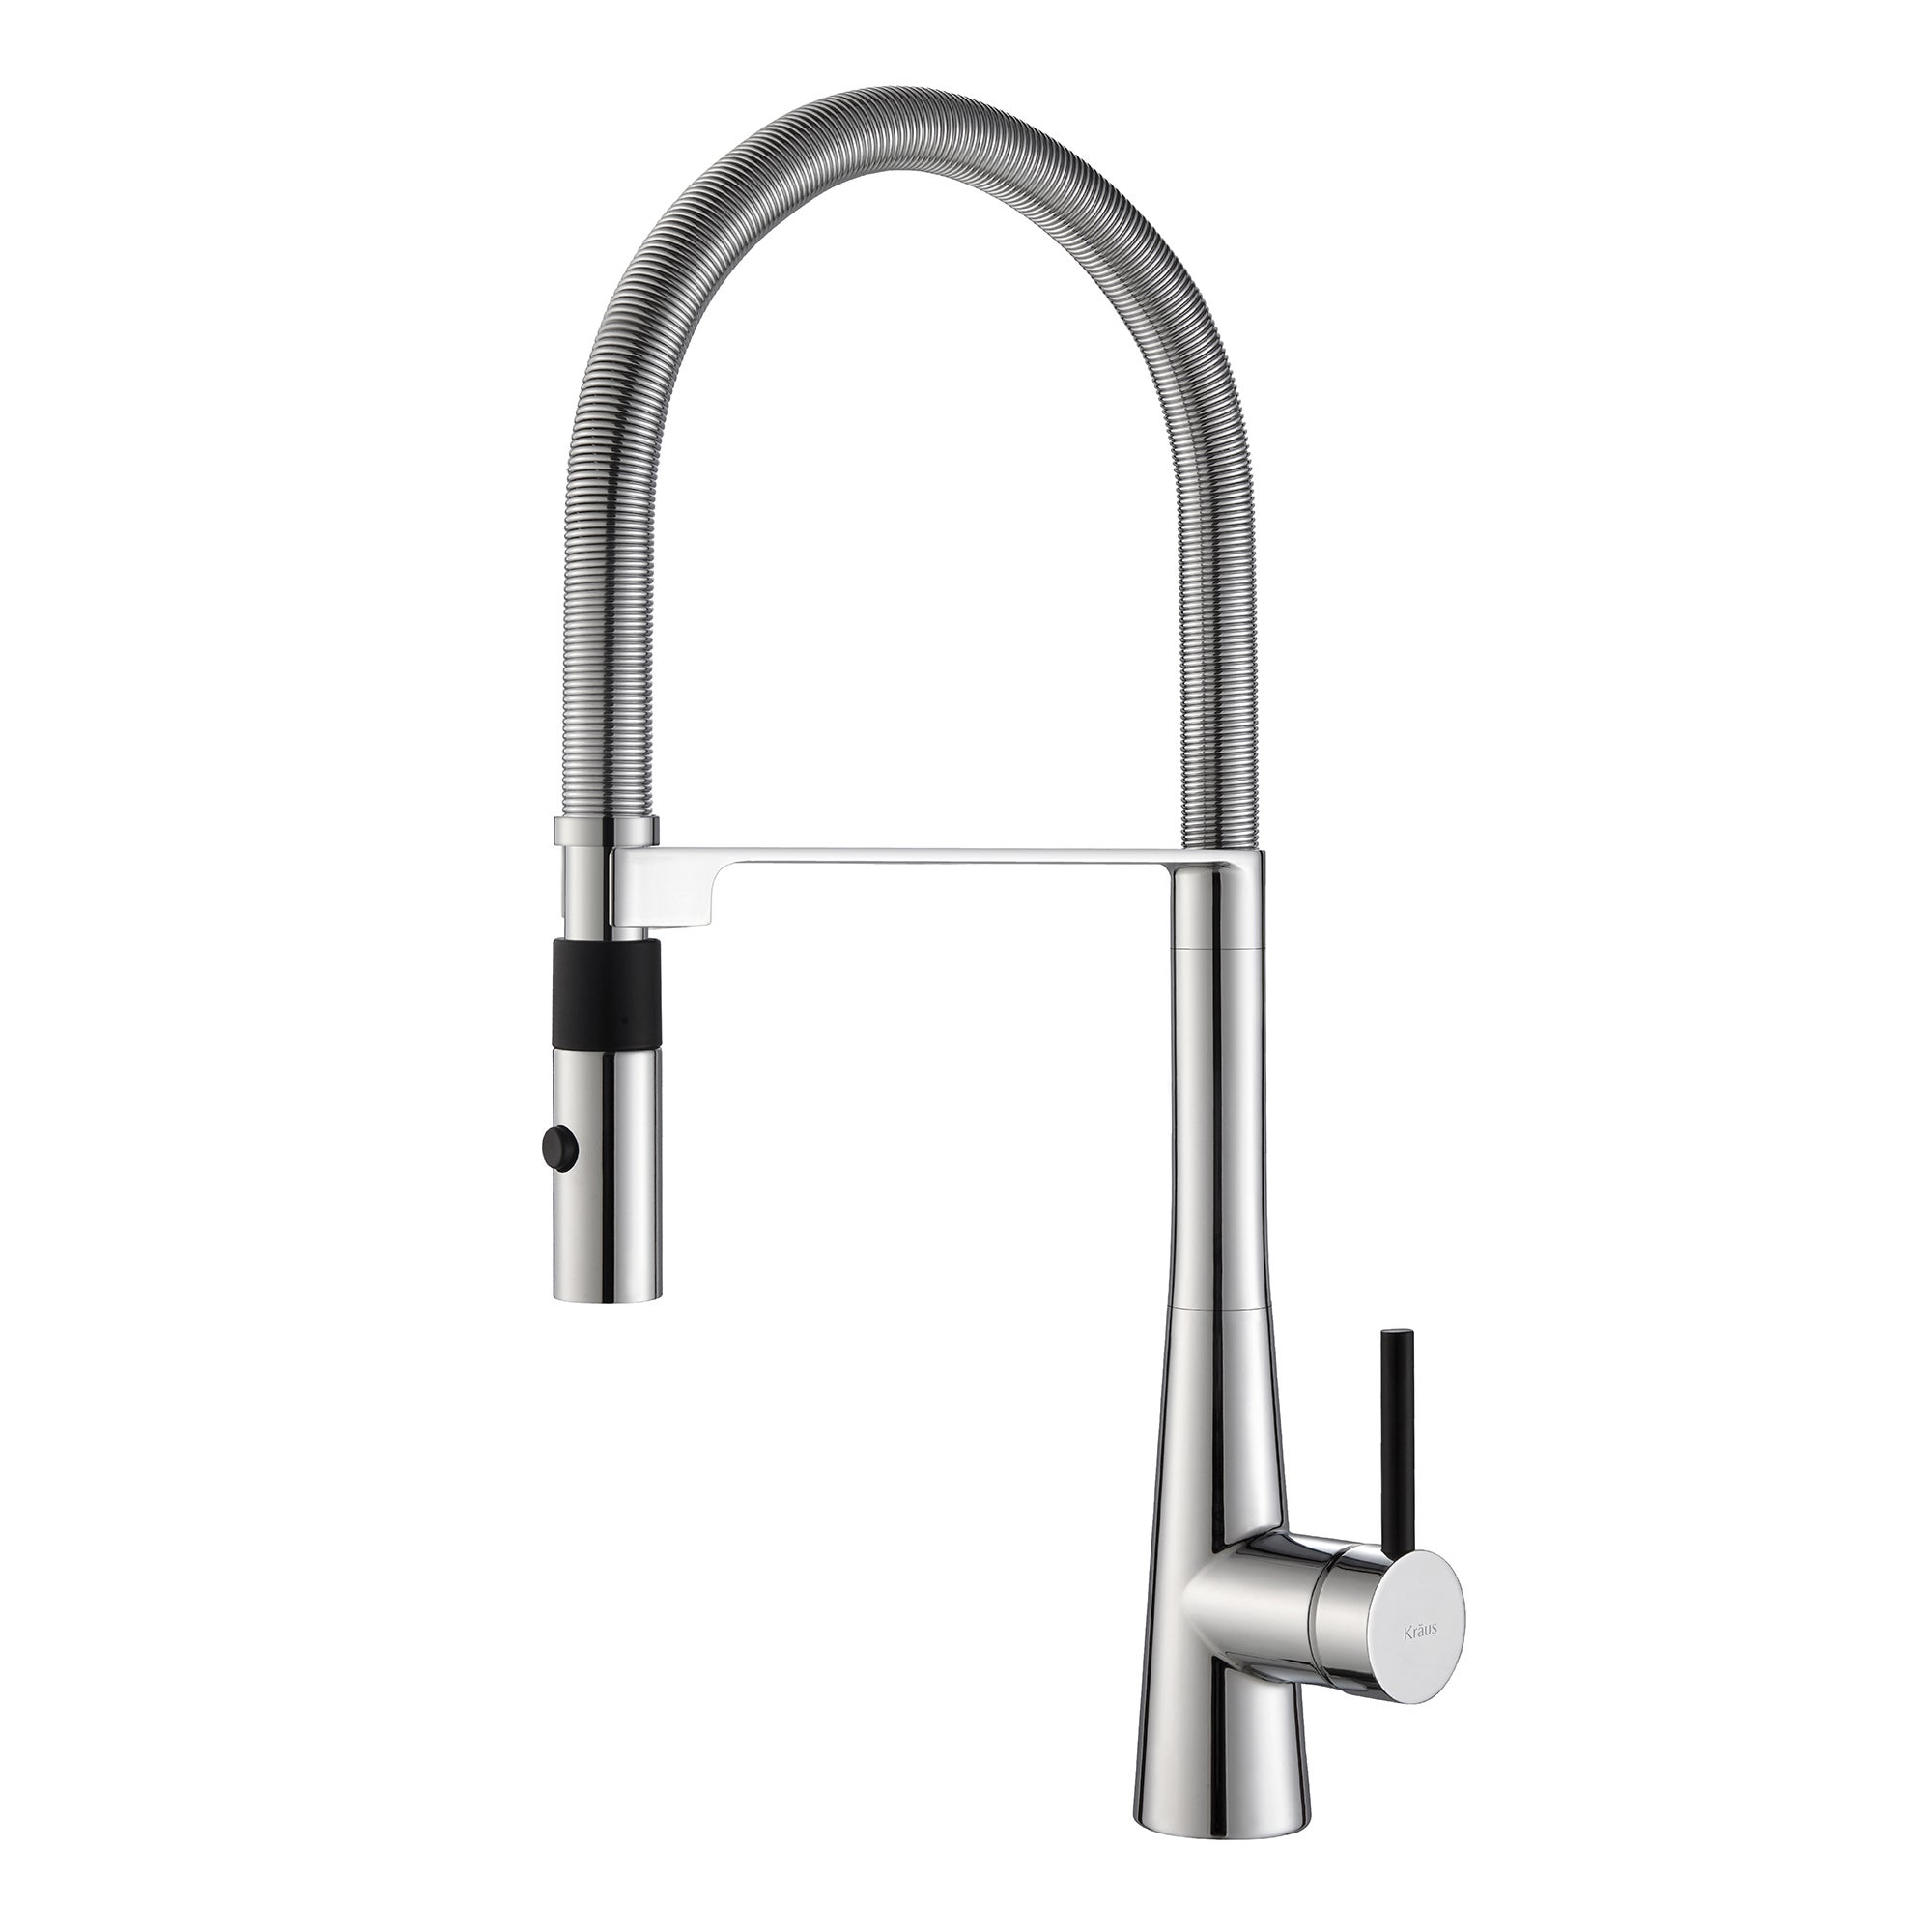 overstock down today sprayer with commercial style shipping pull home kitchen function product three single handle faucet free kraus garden